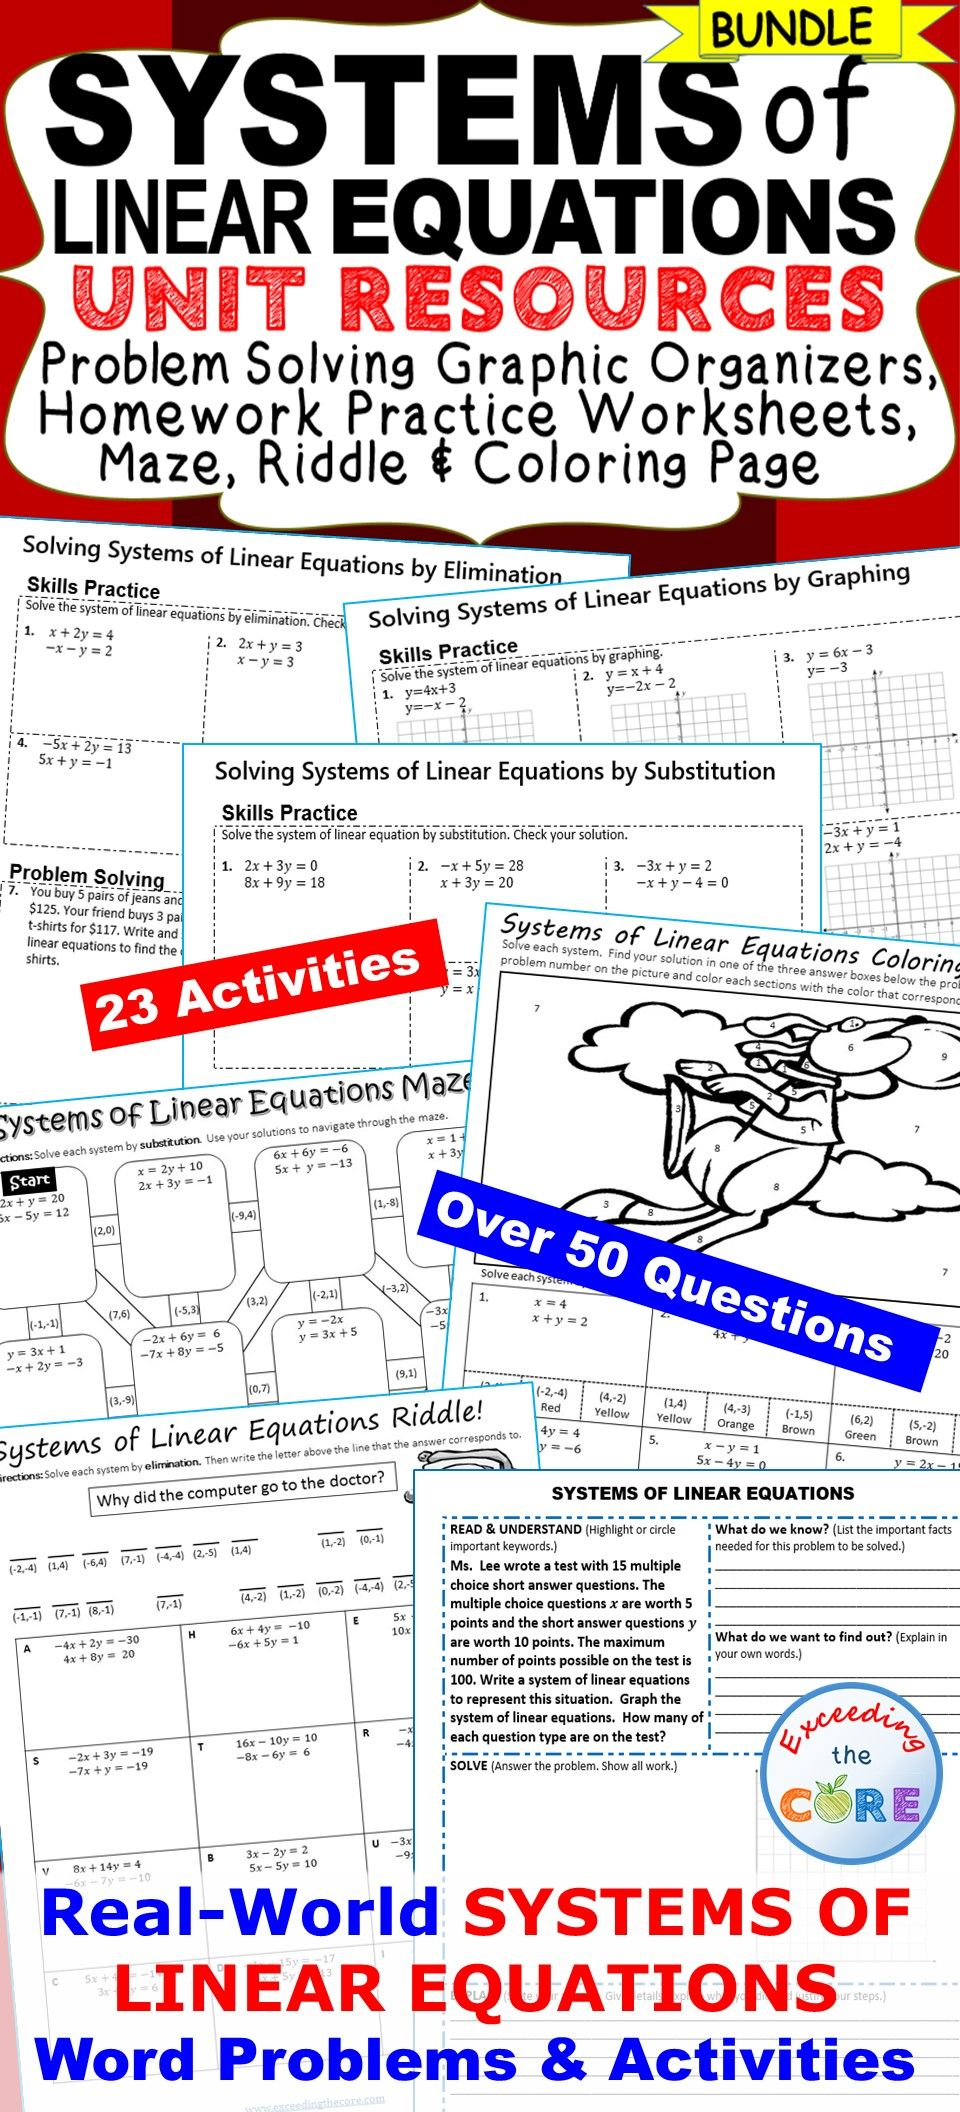 worksheet Linear Equations Puzzle Worksheet systems of linear equations homework practice graphic organizers fun puzzles